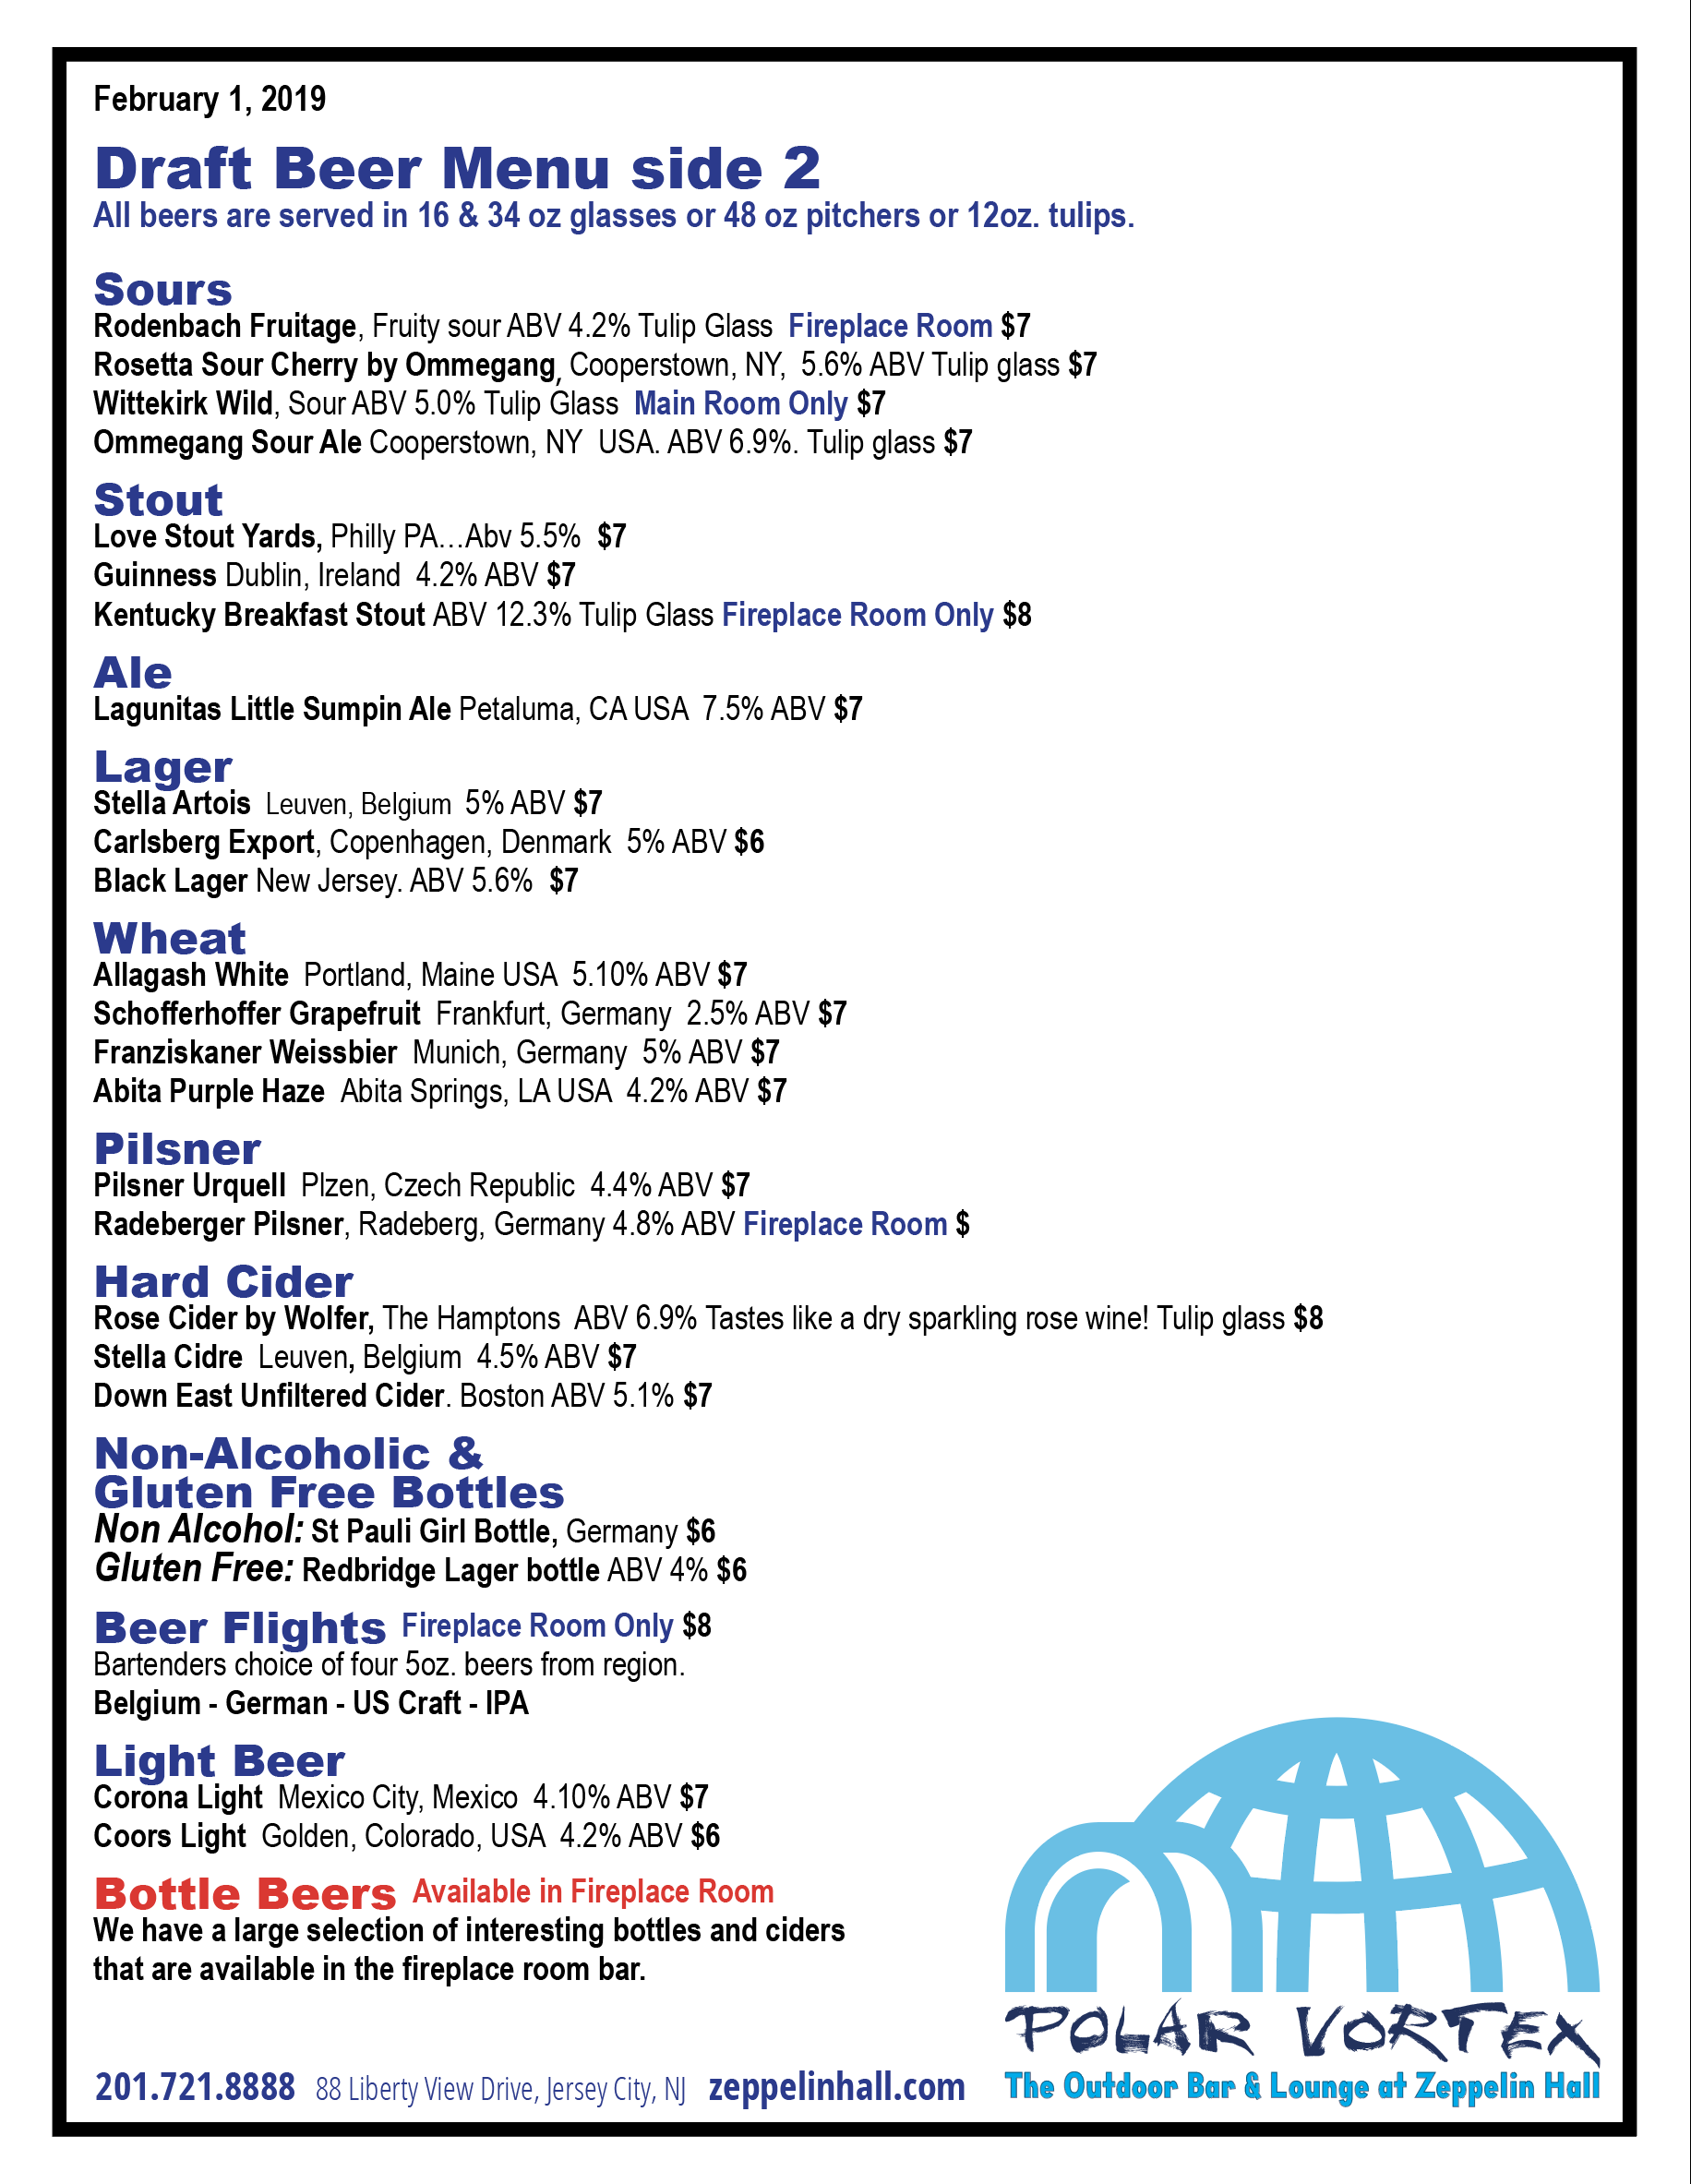 Zeppelin Hall Beer Menu Page 2